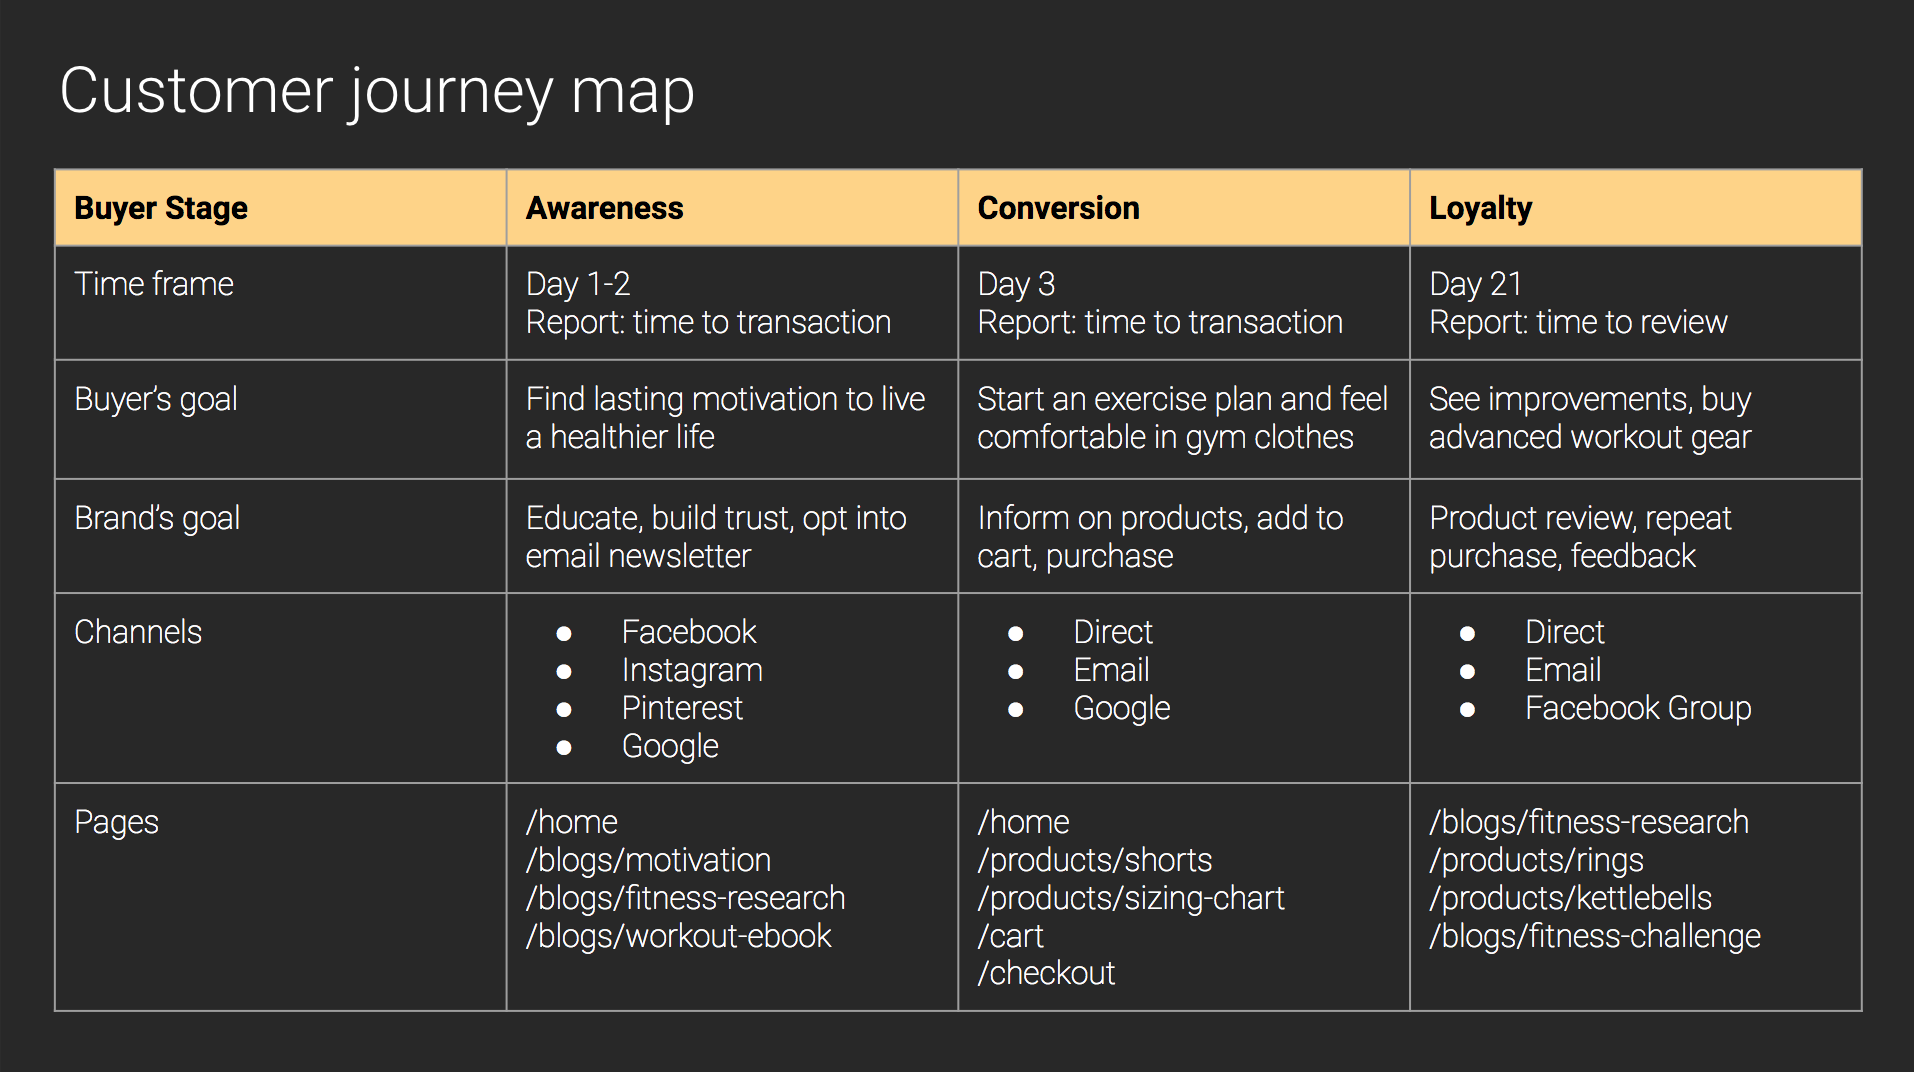 How to map a customer journey in ecommerce with templates customer journey map in ecommerce template fandeluxe Image collections